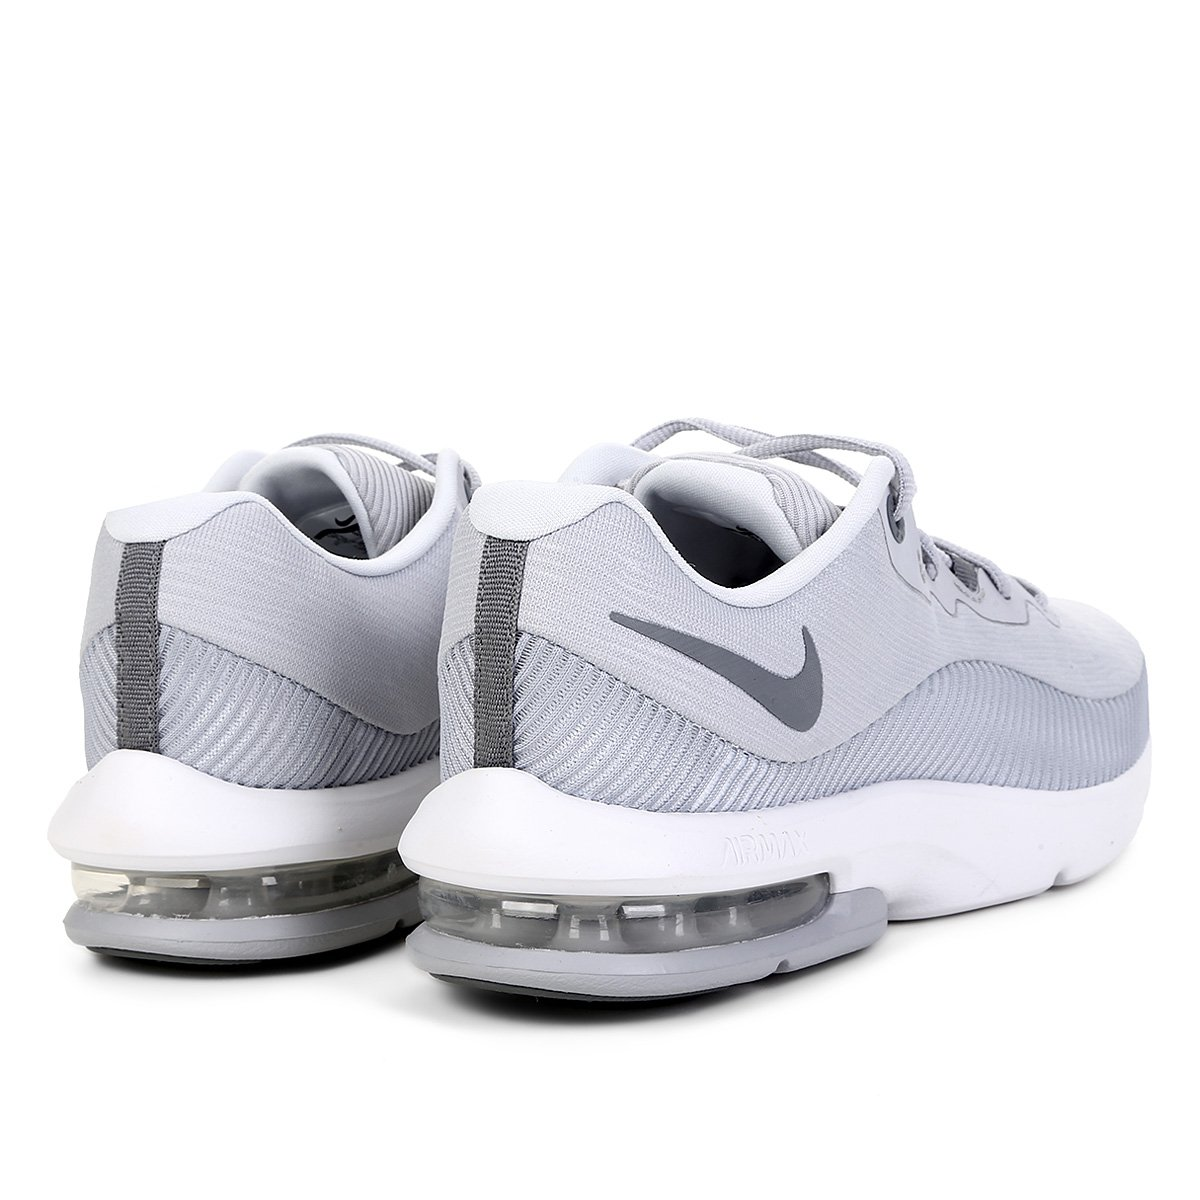 Nike Air Max Advantage Produkte online Shop & Outlet